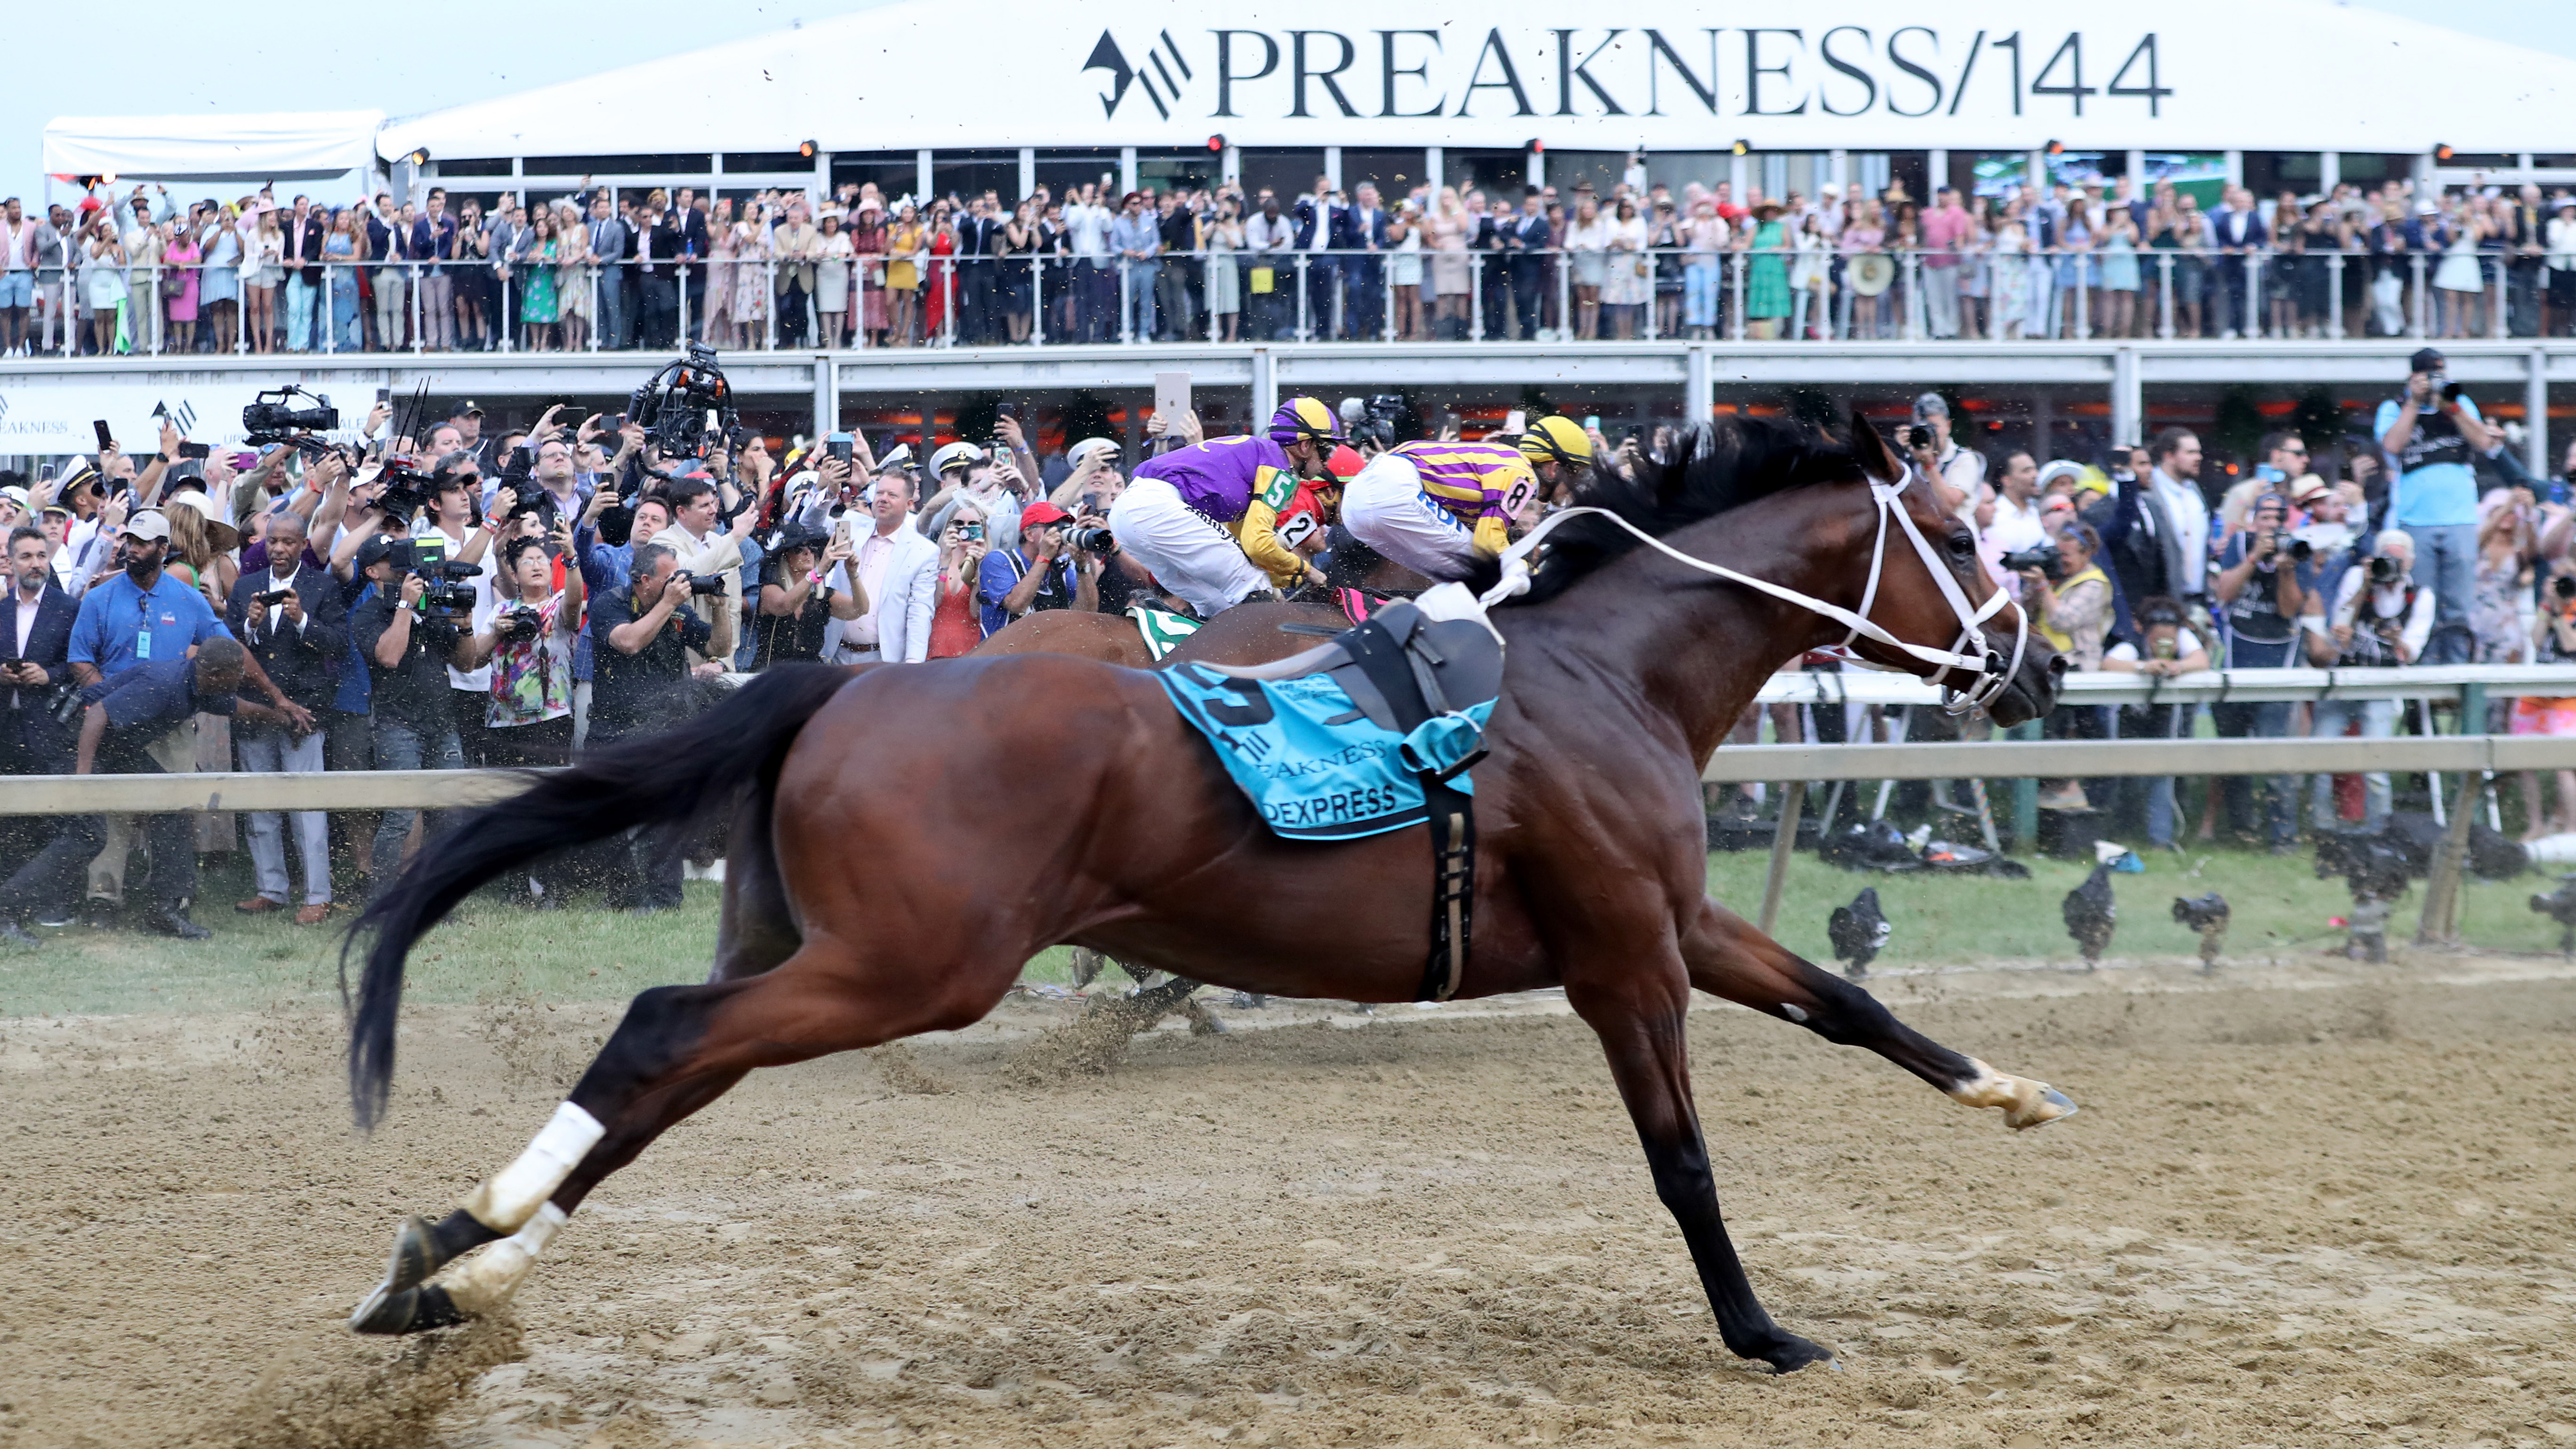 horses running in the preakness 2020